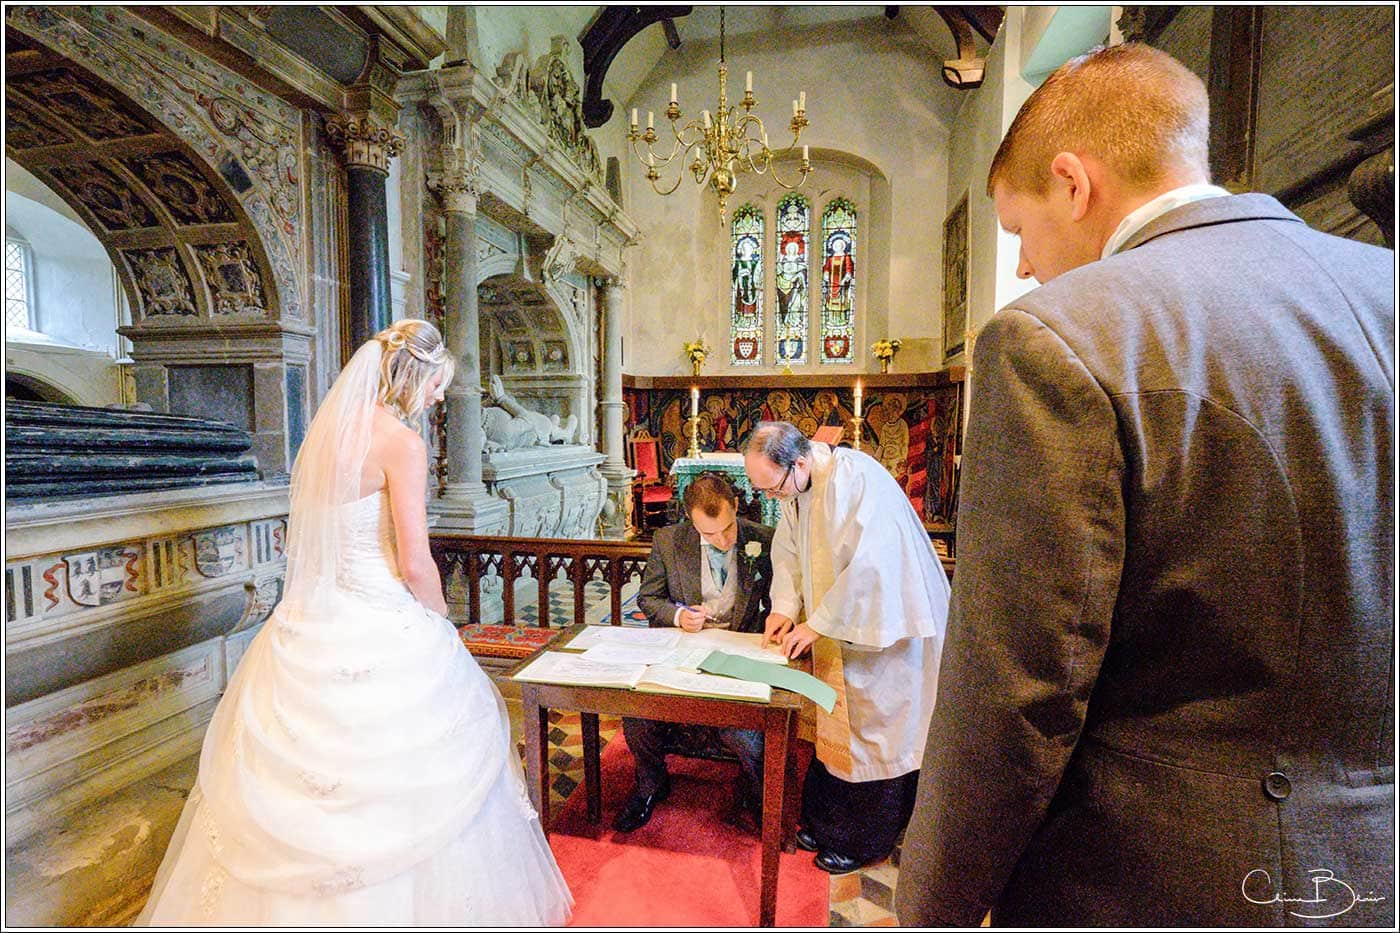 Groom signing the register-by Hampton manor wedding photographer Clive Blair Photography